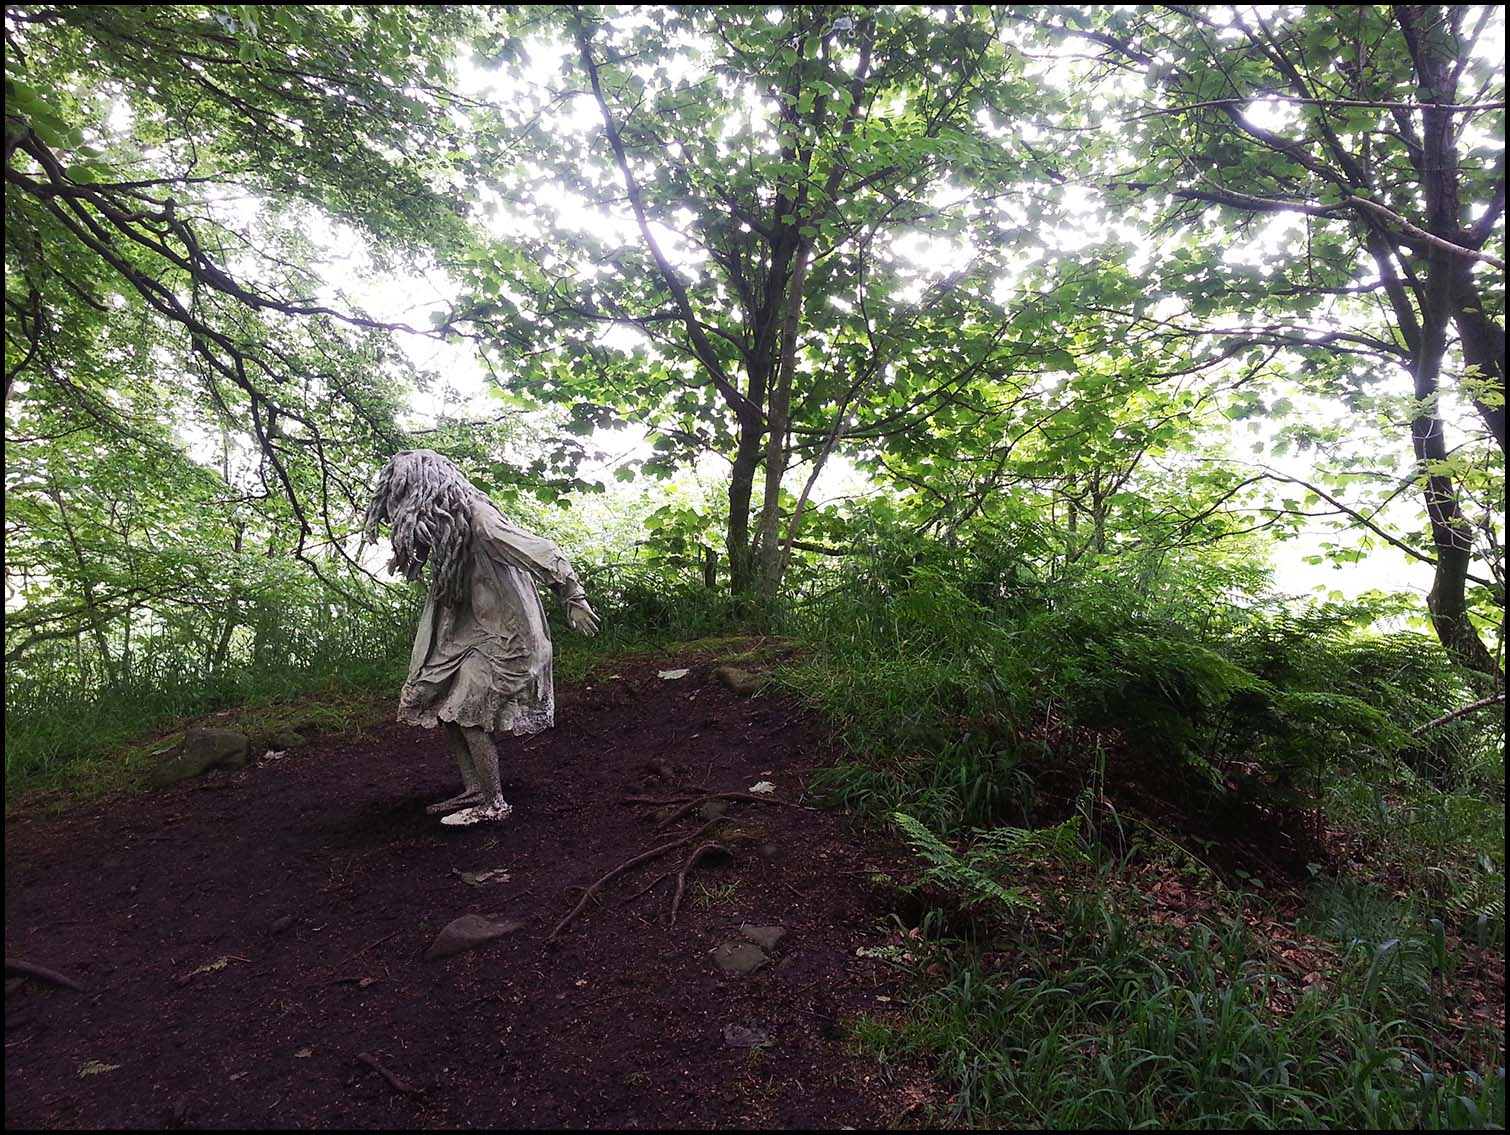 Weeping Girls at Jupiter Artland